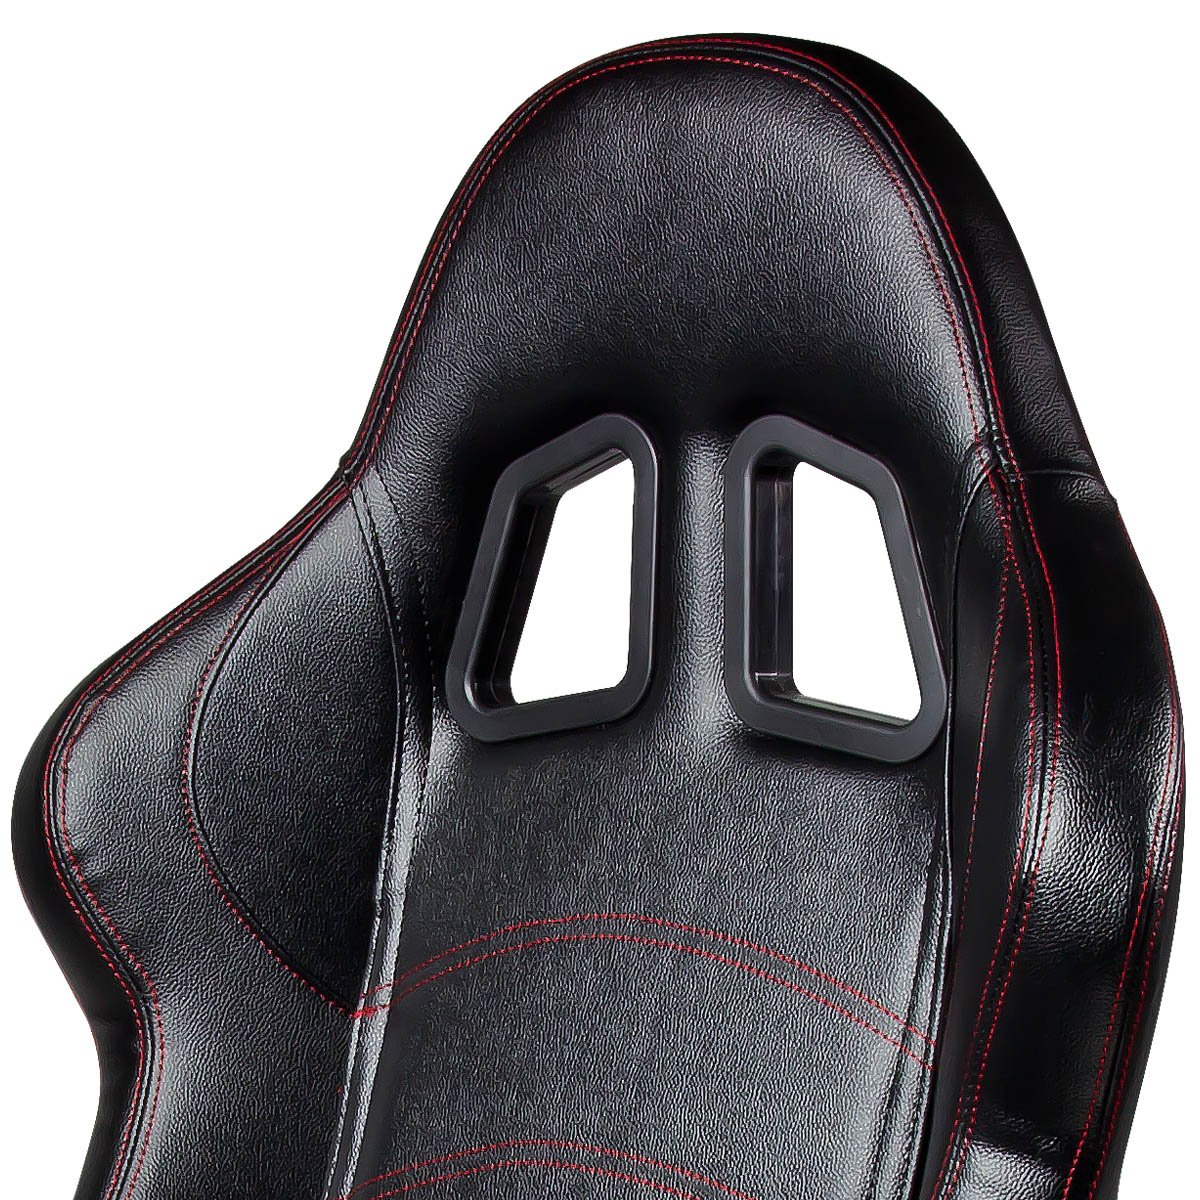 Left//Driver Side Only DNA RS-T1-PVC-BK-L Type-1 Black PVC Leather with Red Stitch Racing Seat